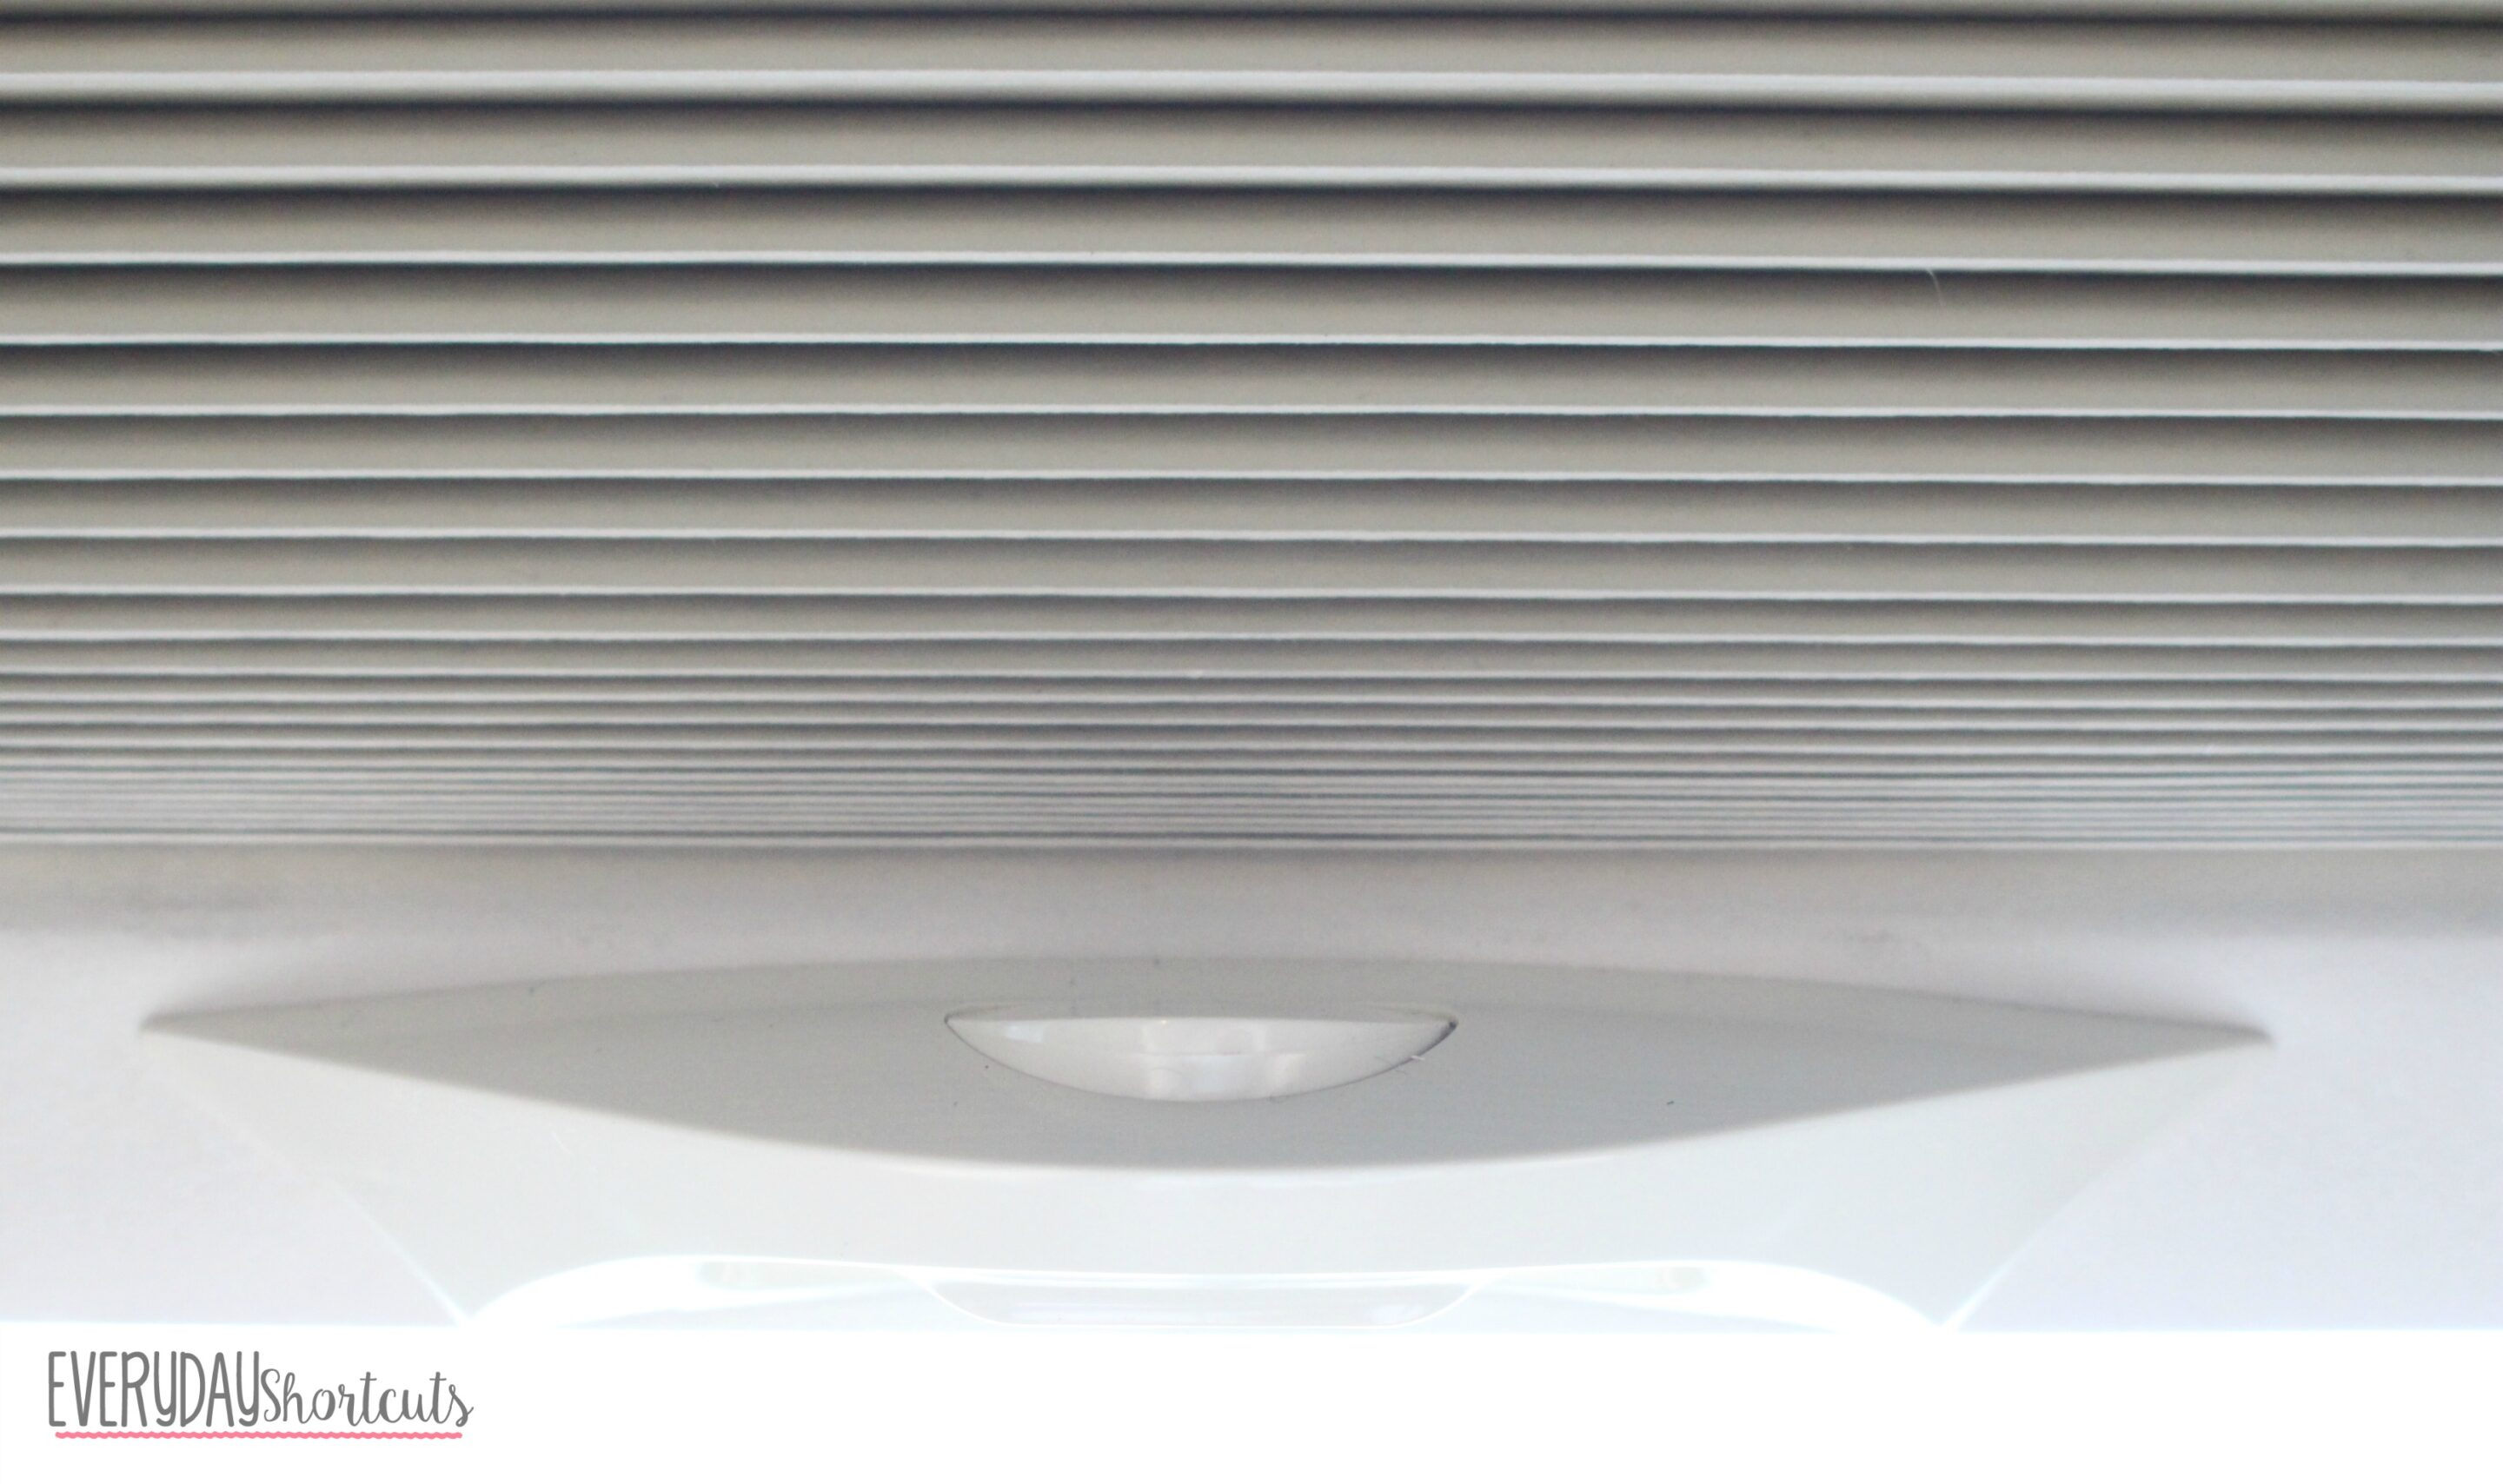 blinds handle